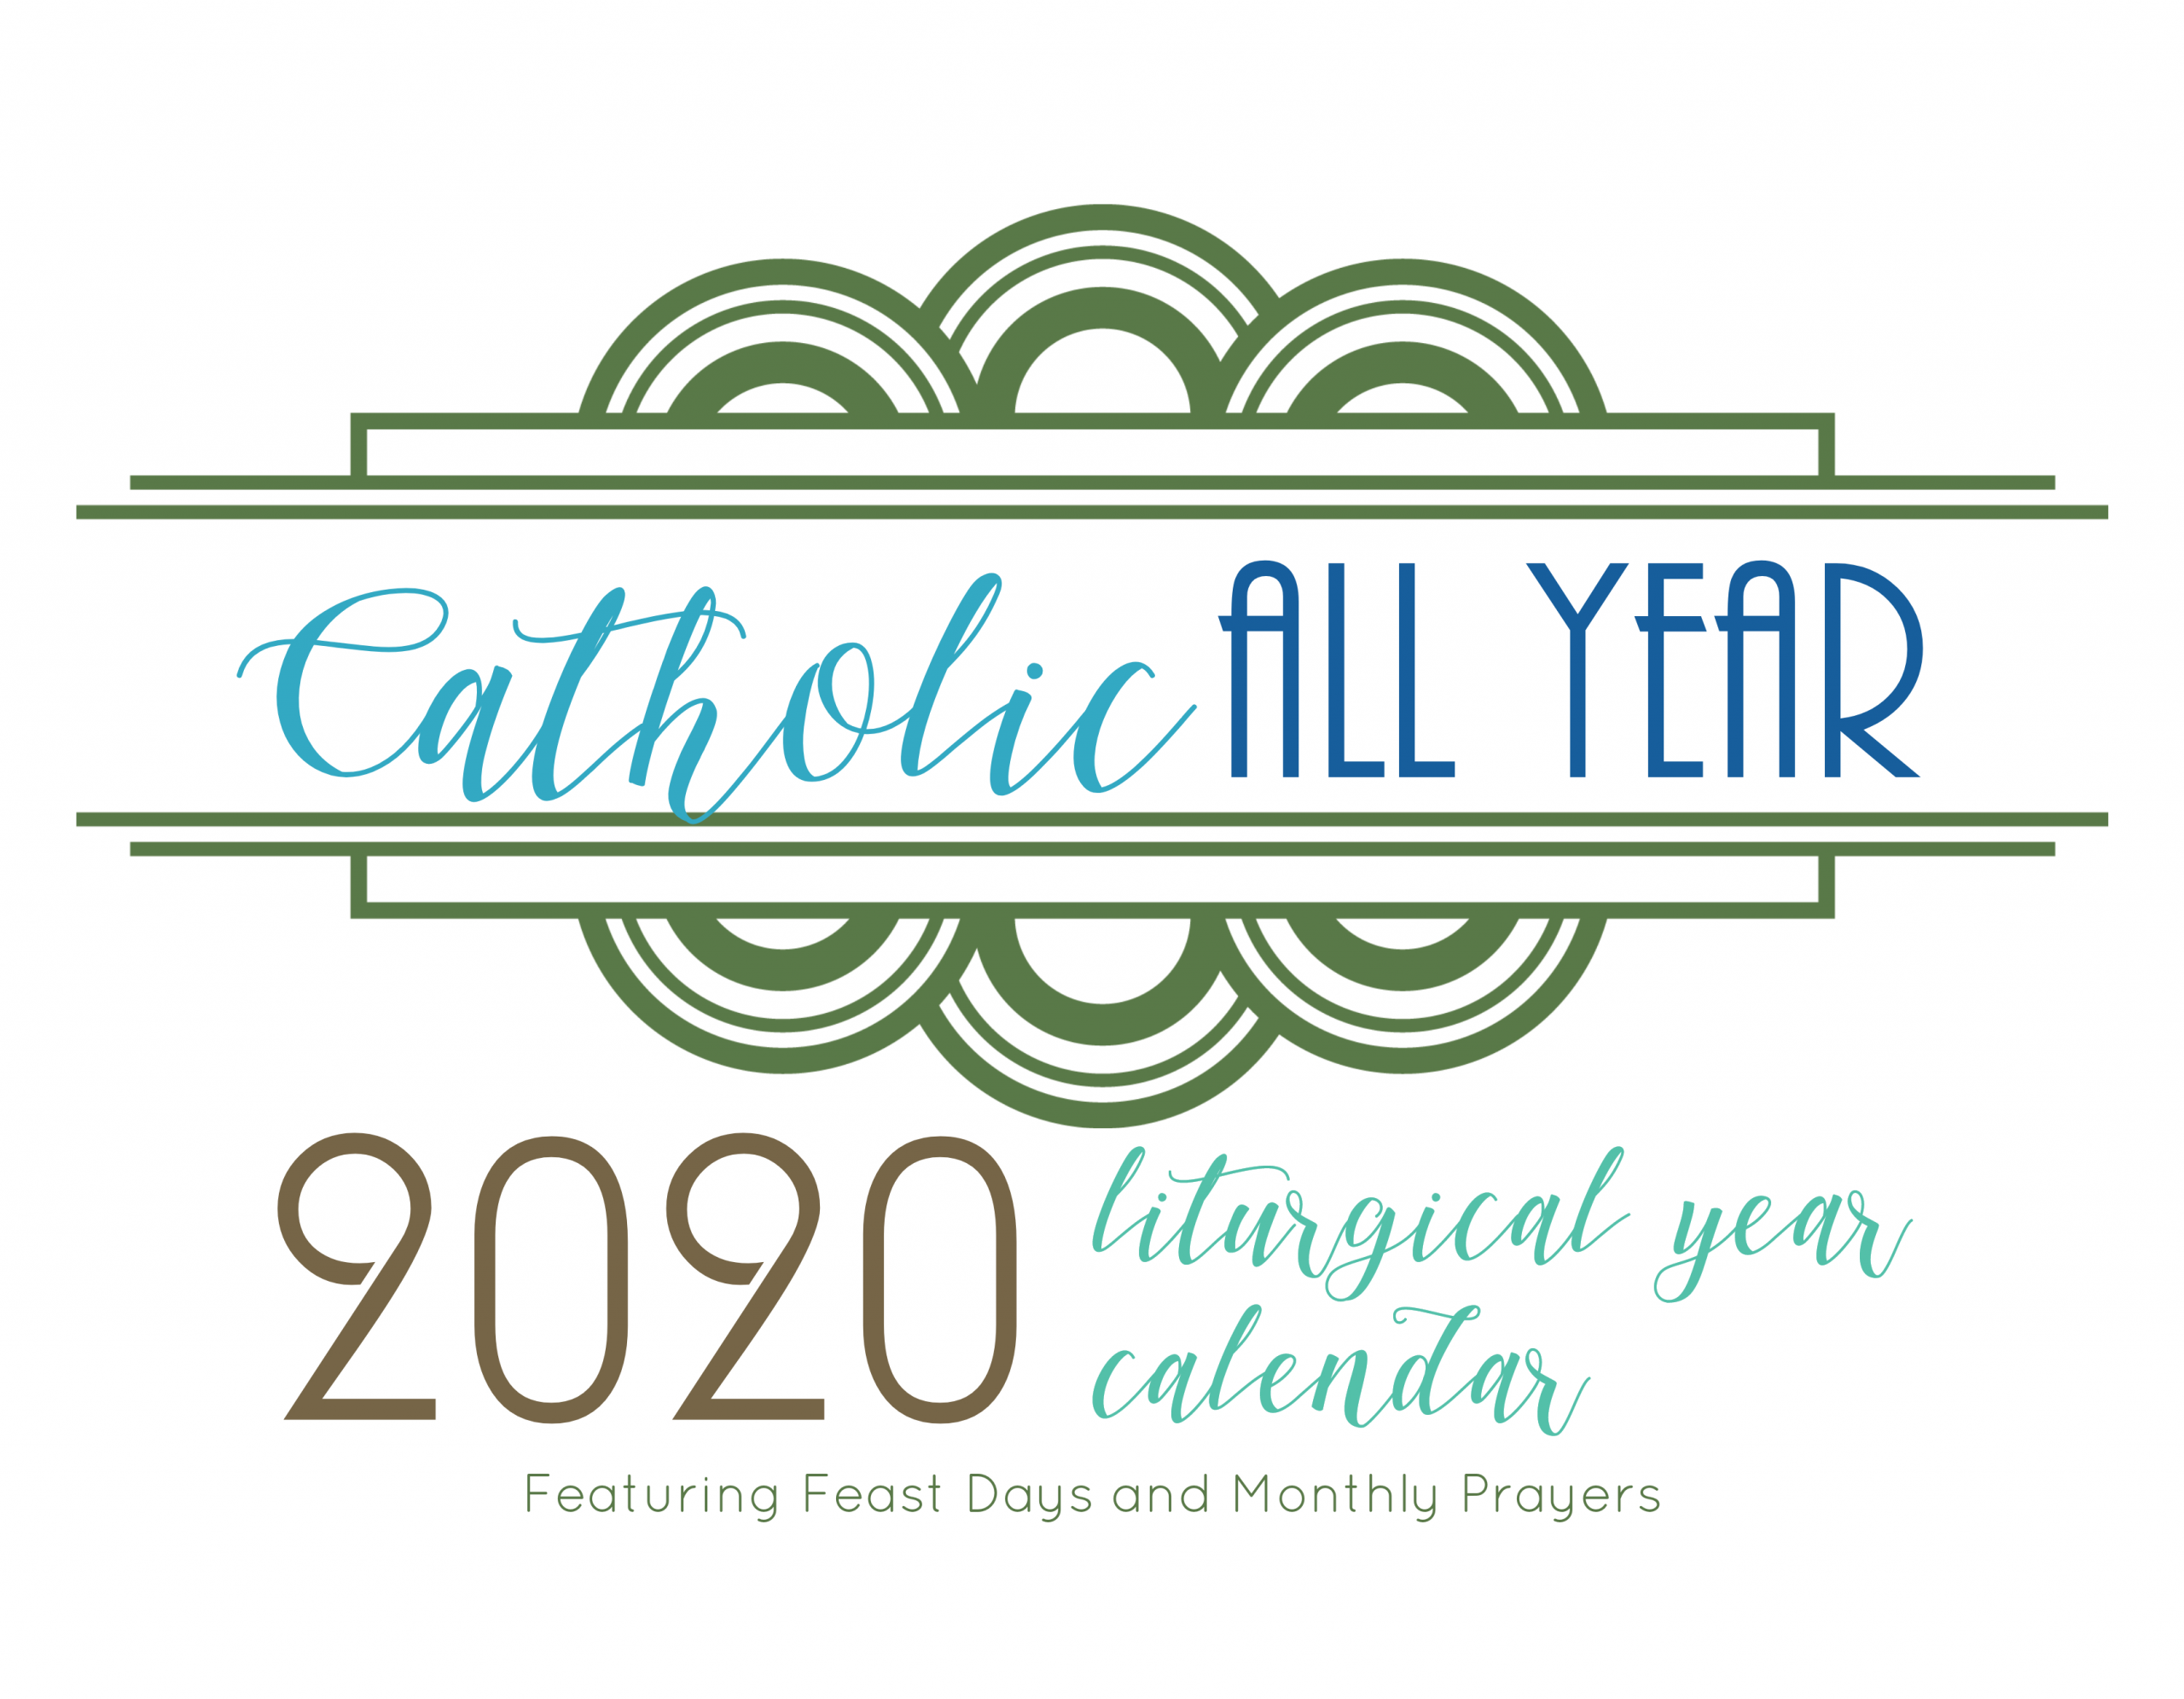 Catholic All Year 2020 Monthly Prayers Liturgical Year Calendar *digital  Download*